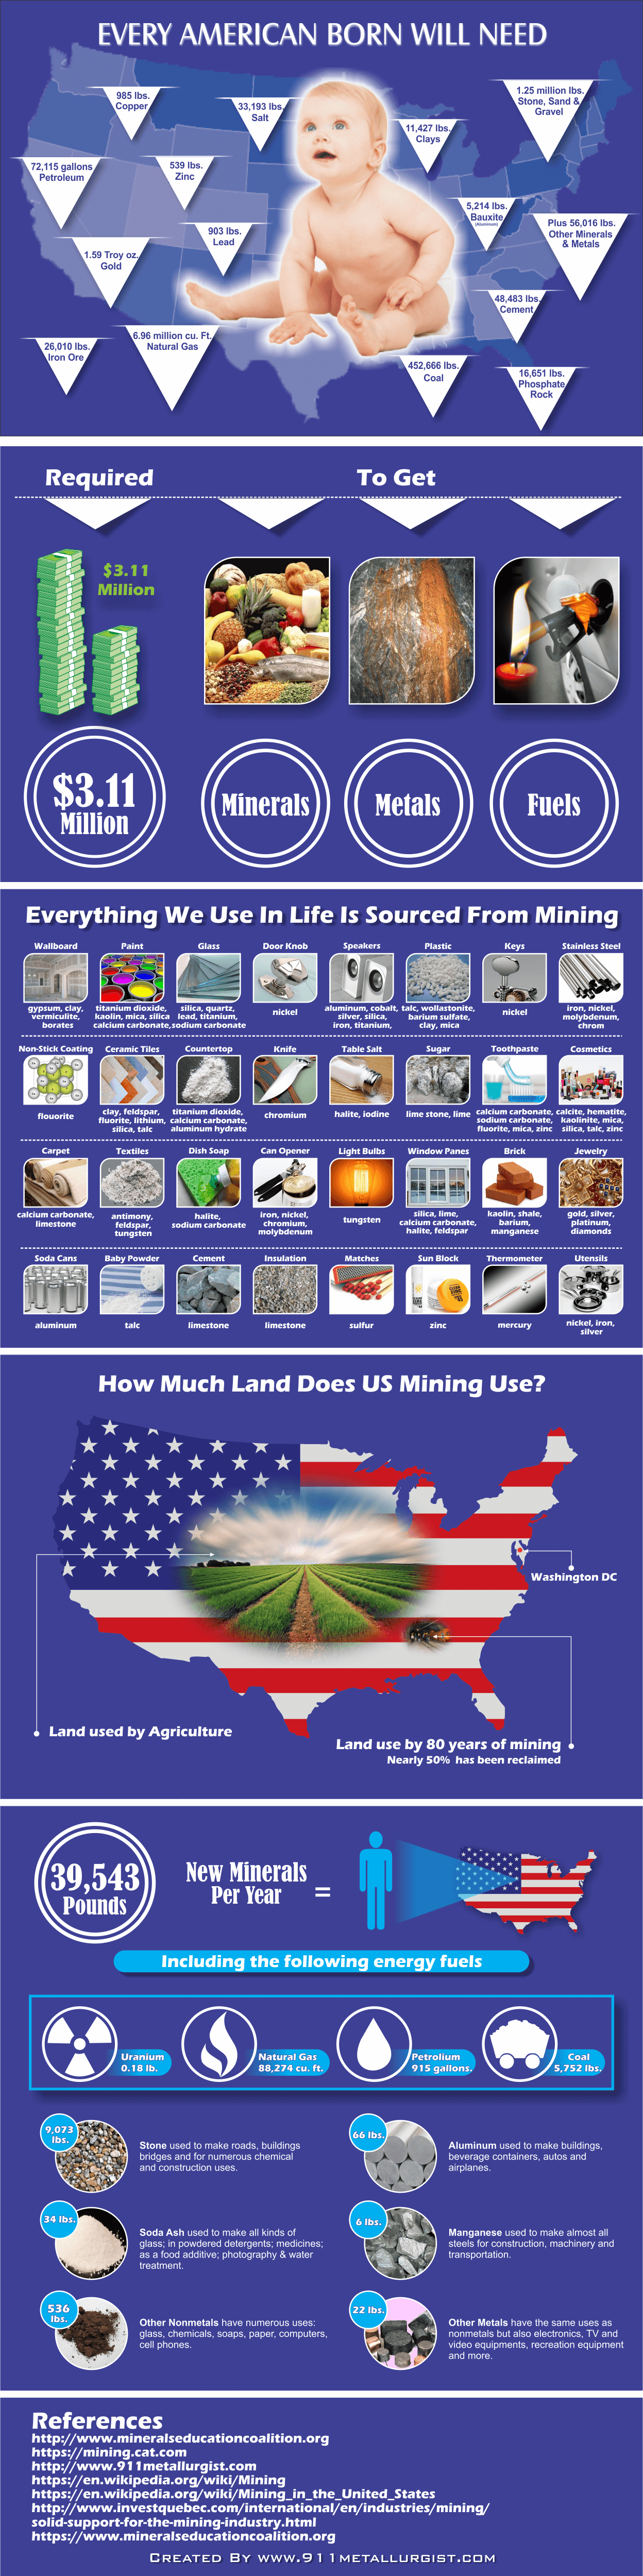 Why do we need mining & metals